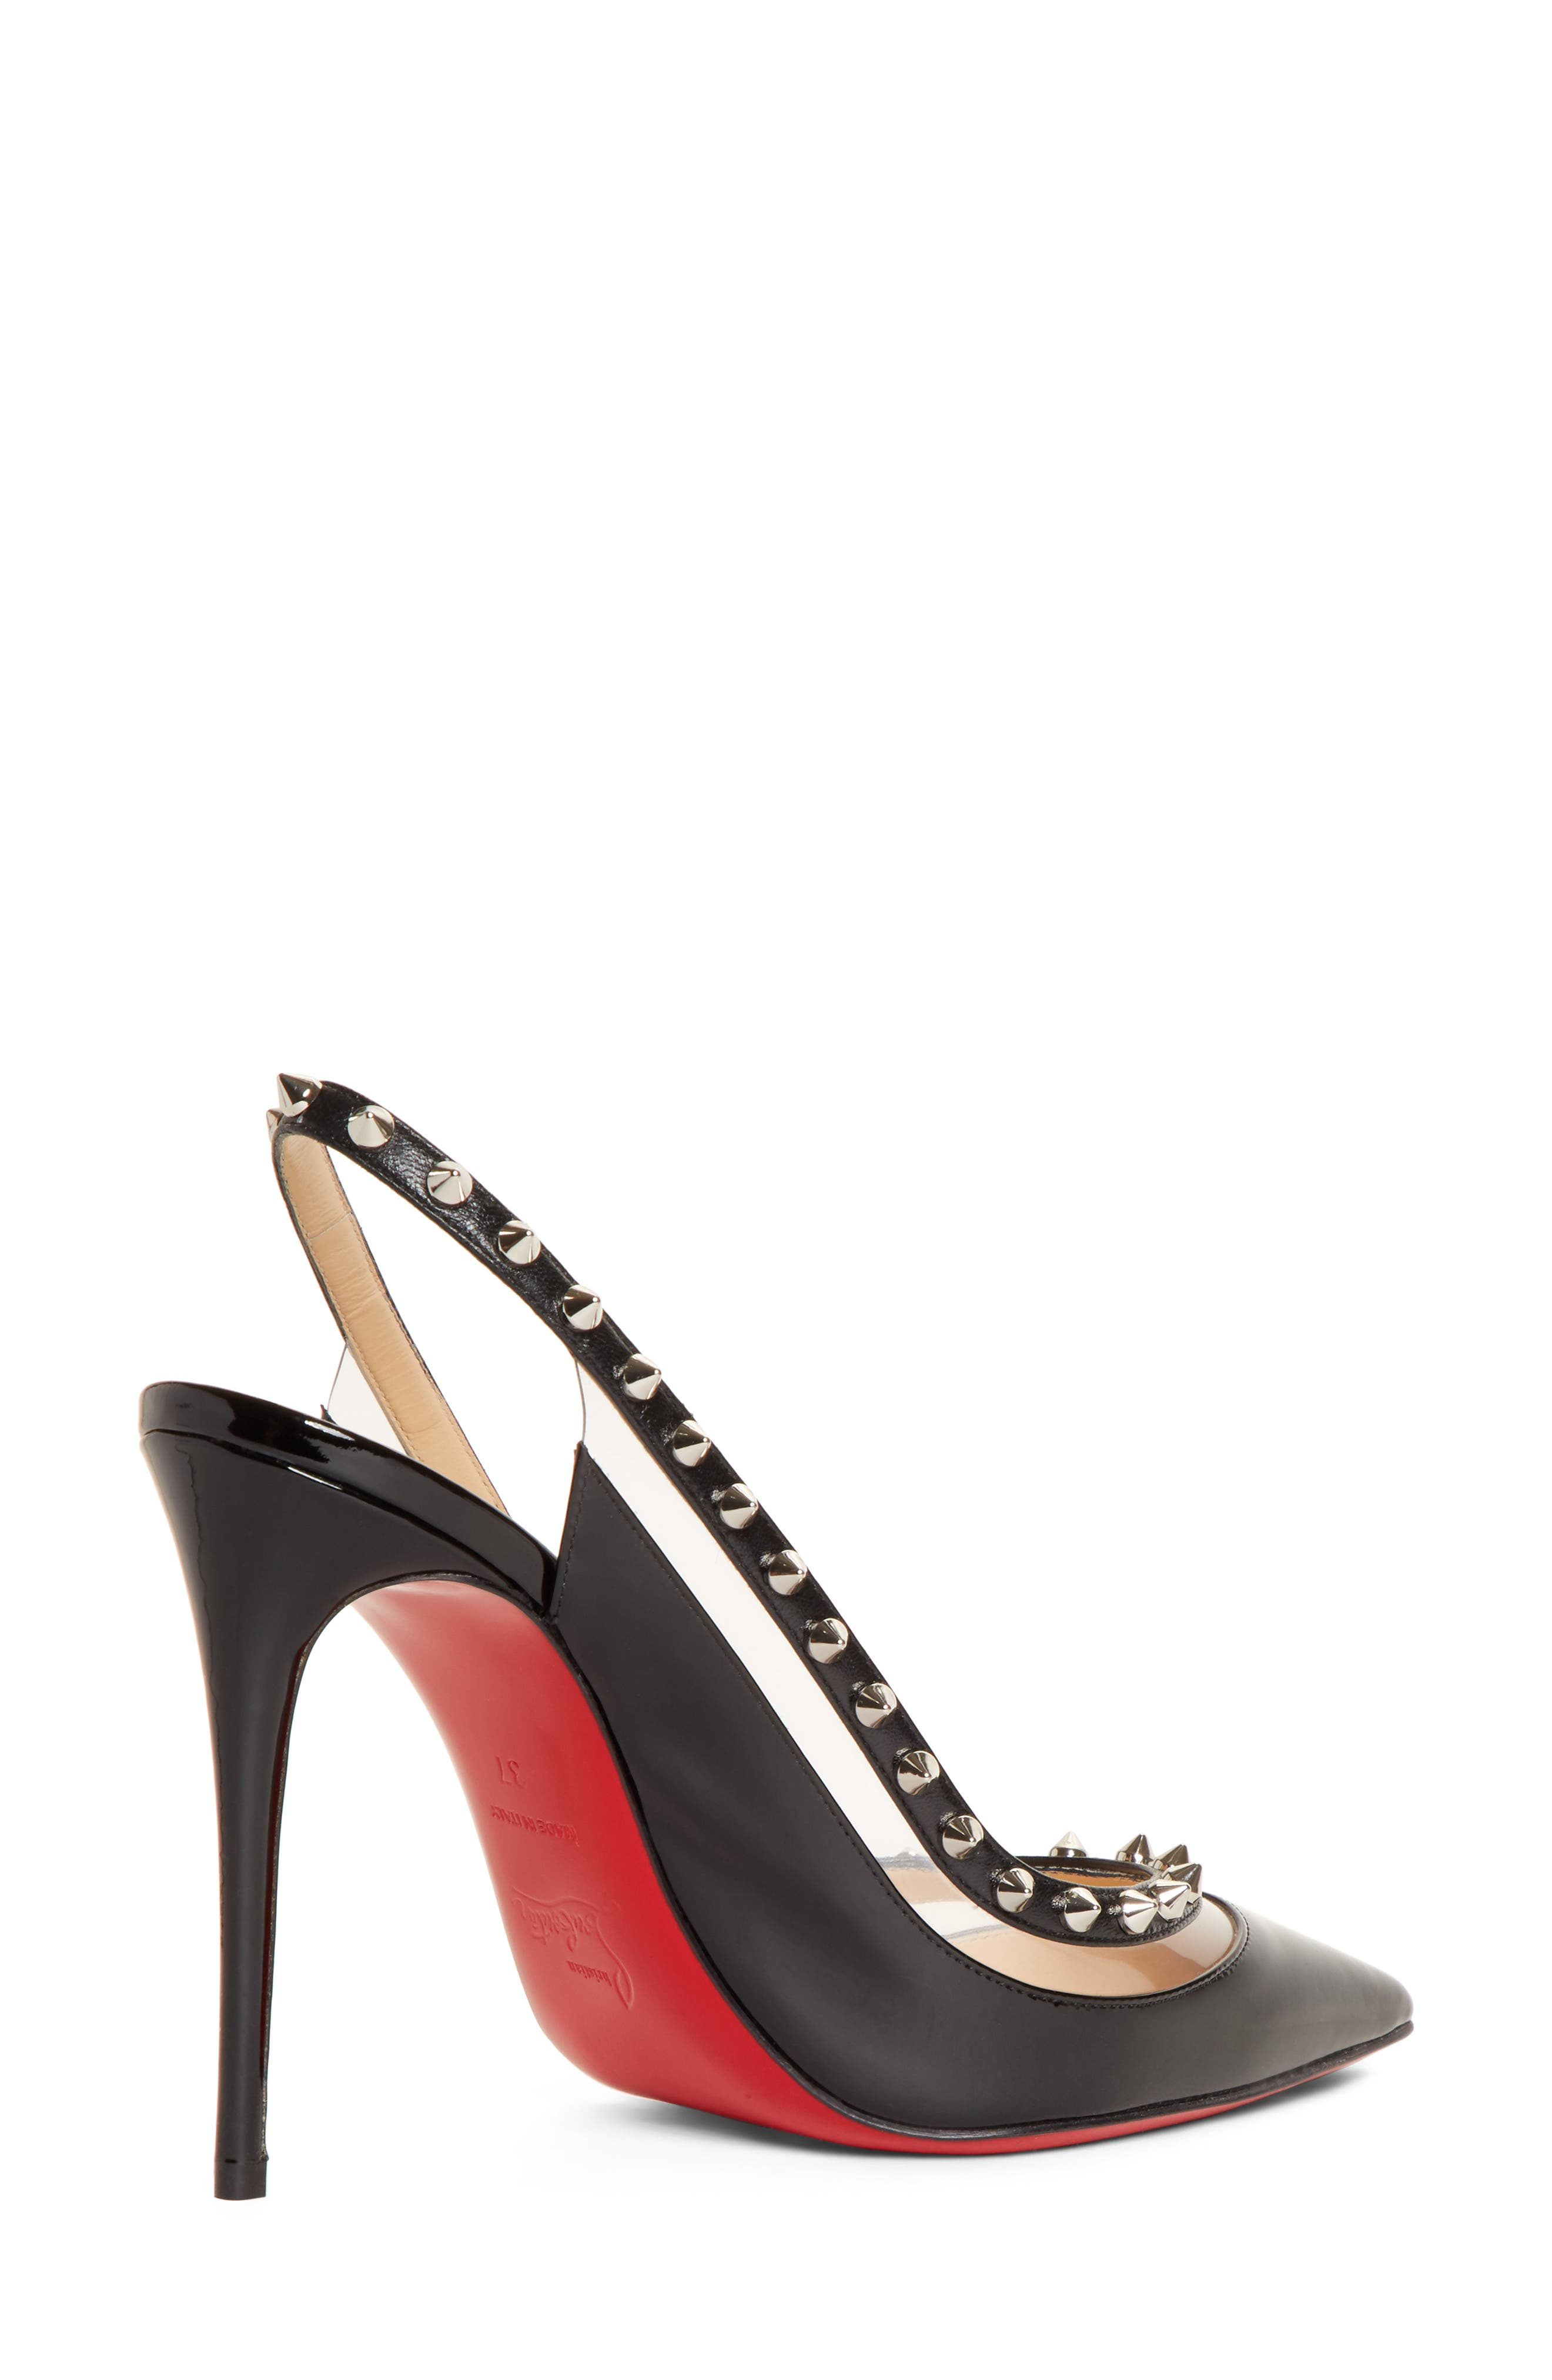 d762ffc8f811 Christian Louboutin Women s Slingback Shoes